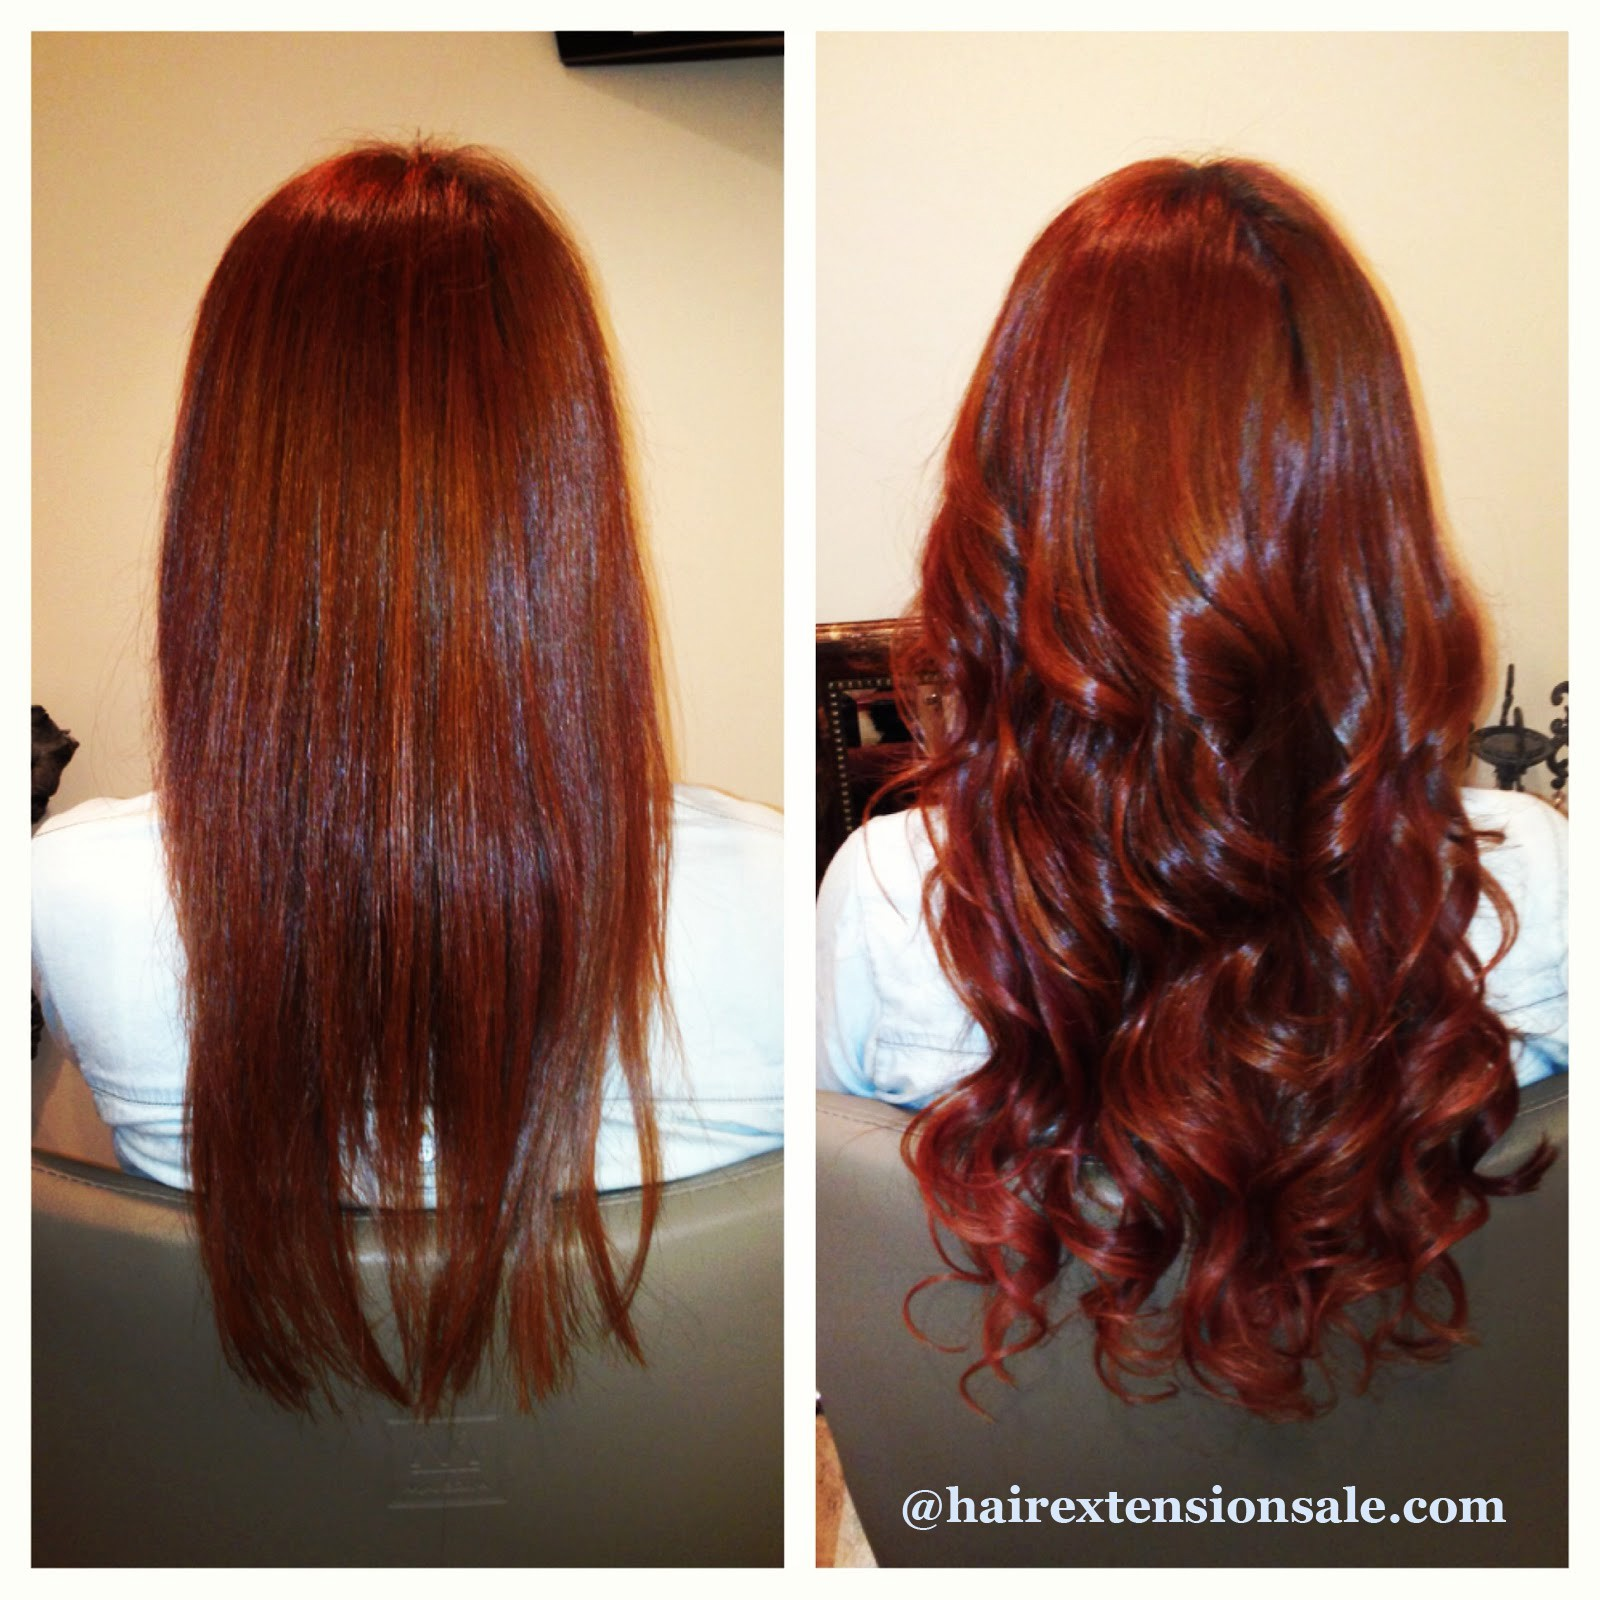 Yes S This Hair Is Highly Remended U Have To Work With Your Regardless How Thin Or Thick Extensions Maybe Less